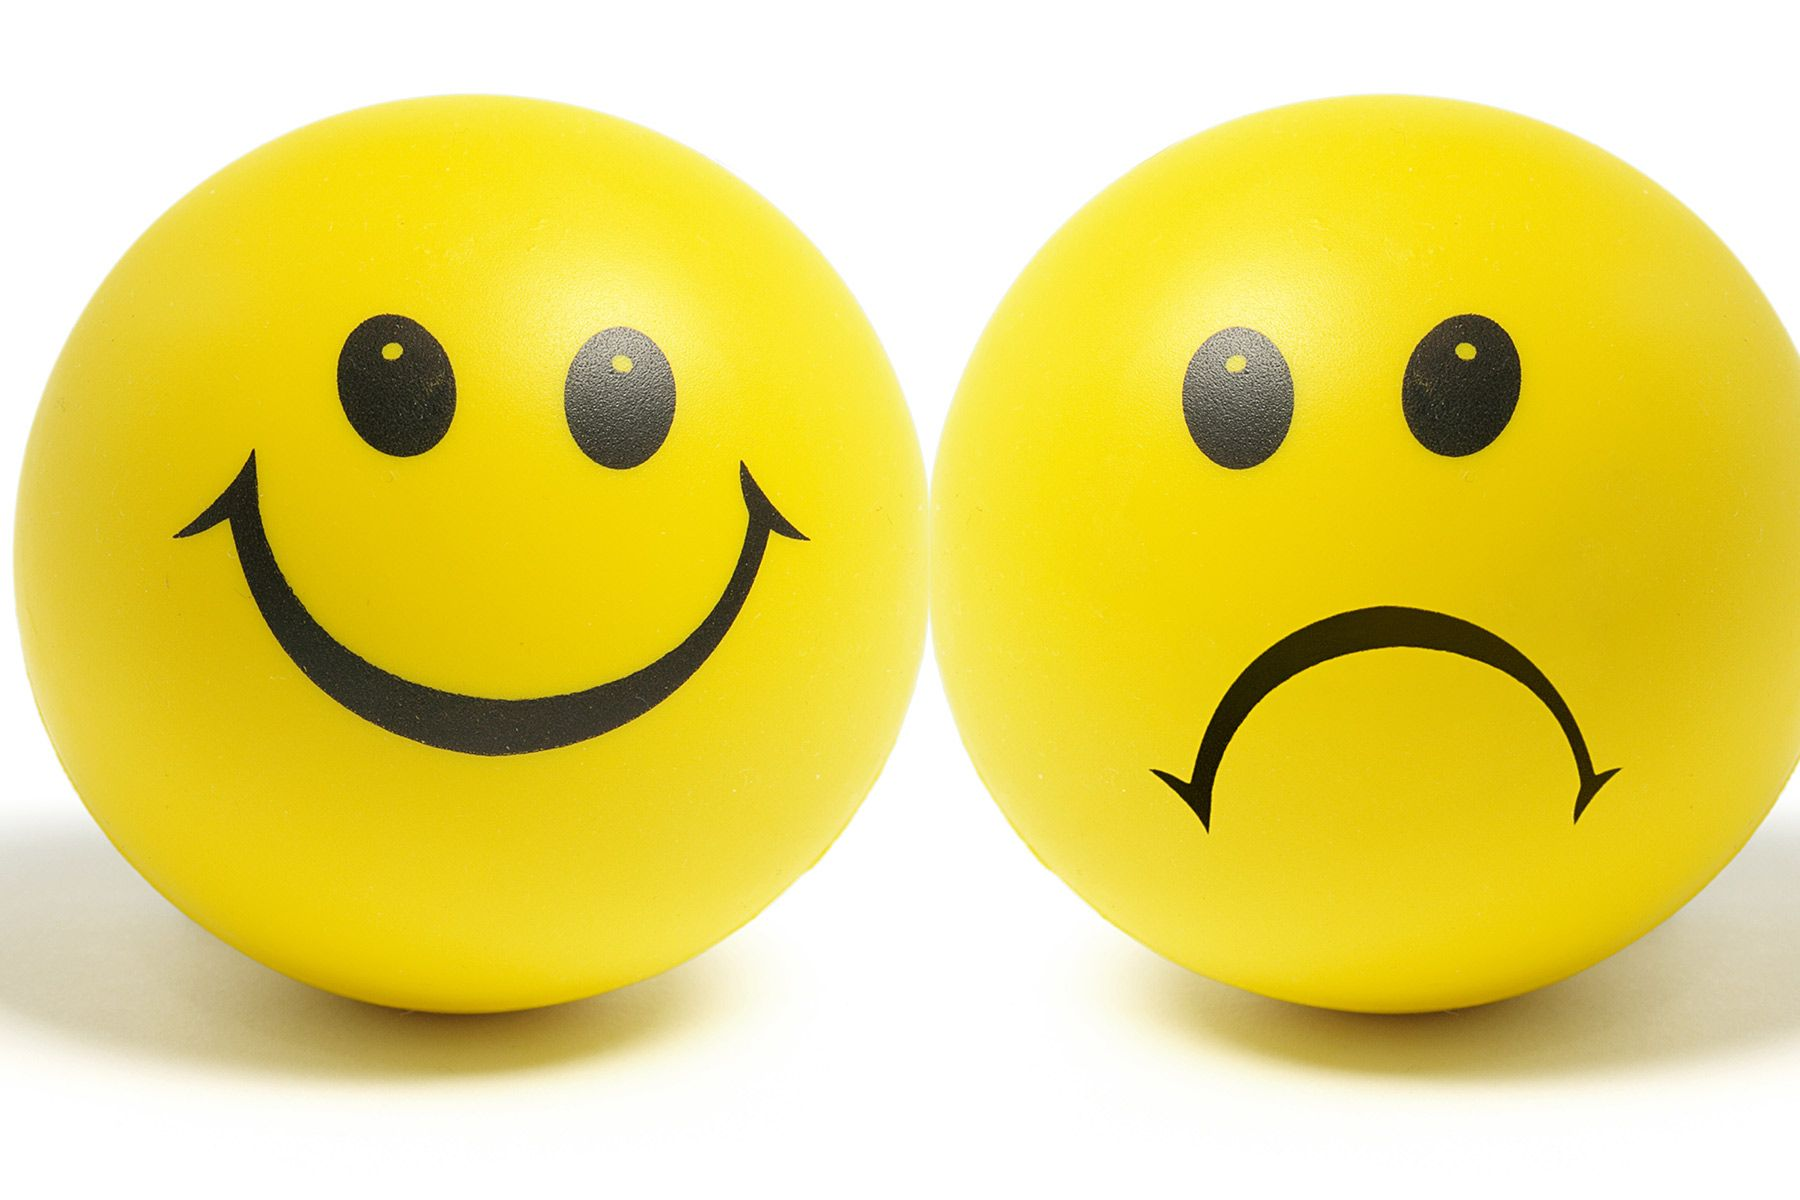 Moods Quiz: In a Bad Mood? What Improves Your Mood?